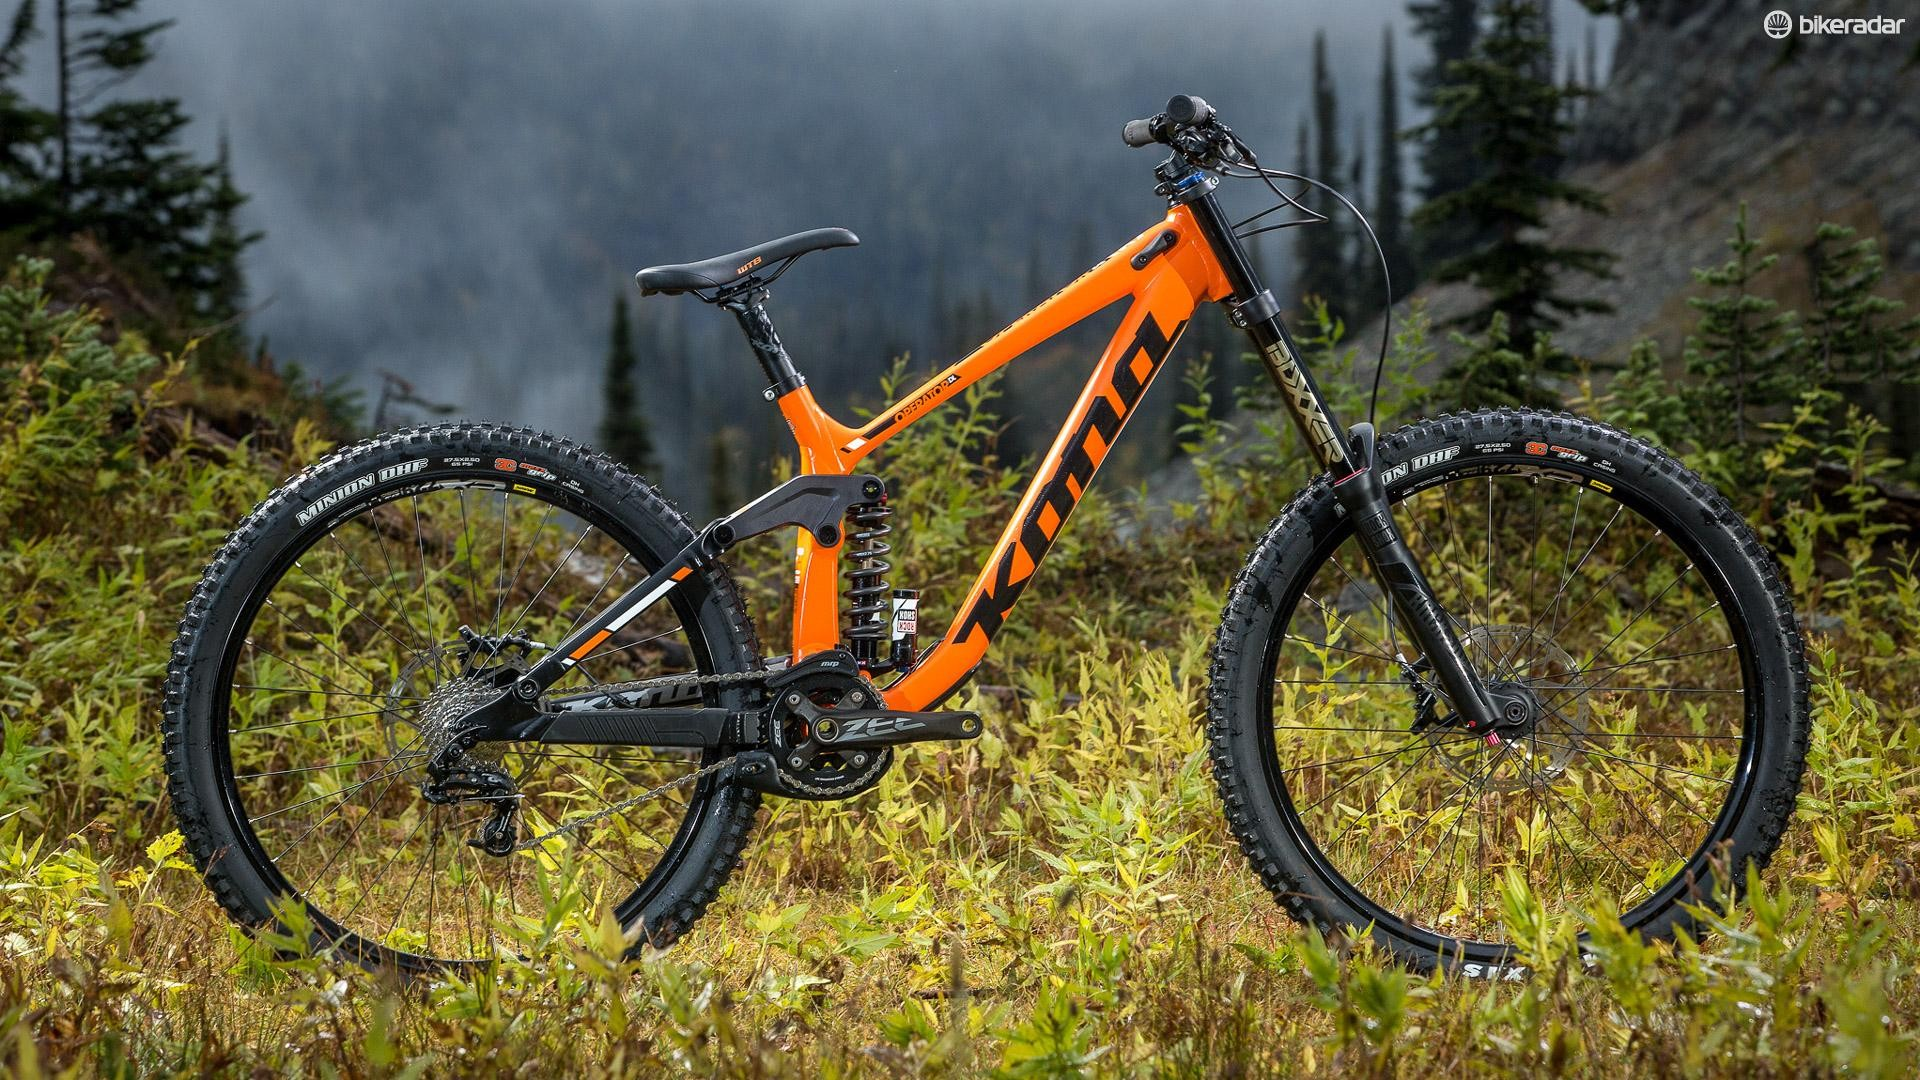 There's now no carbon option, but the reach has been increased and the suspension made more progressive